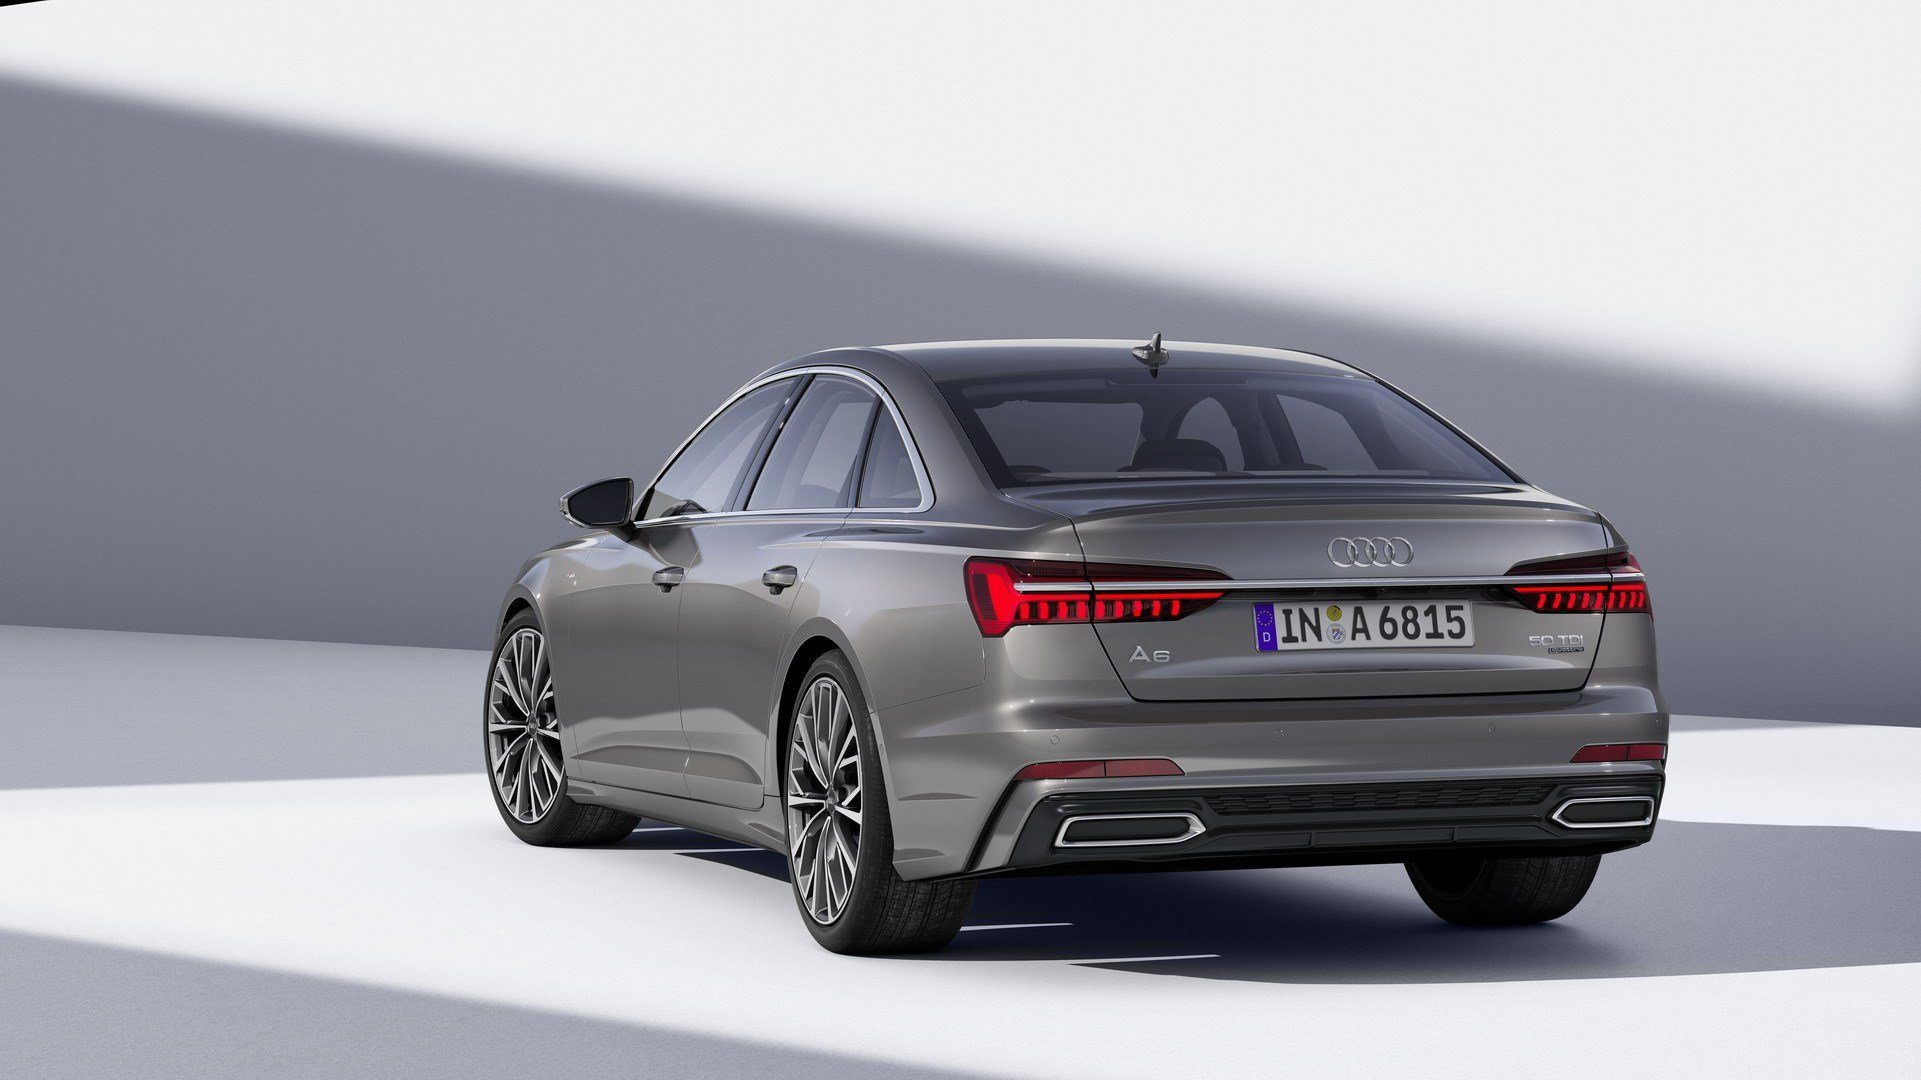 New Audi A6 2018 Audi Autopareri On This Month